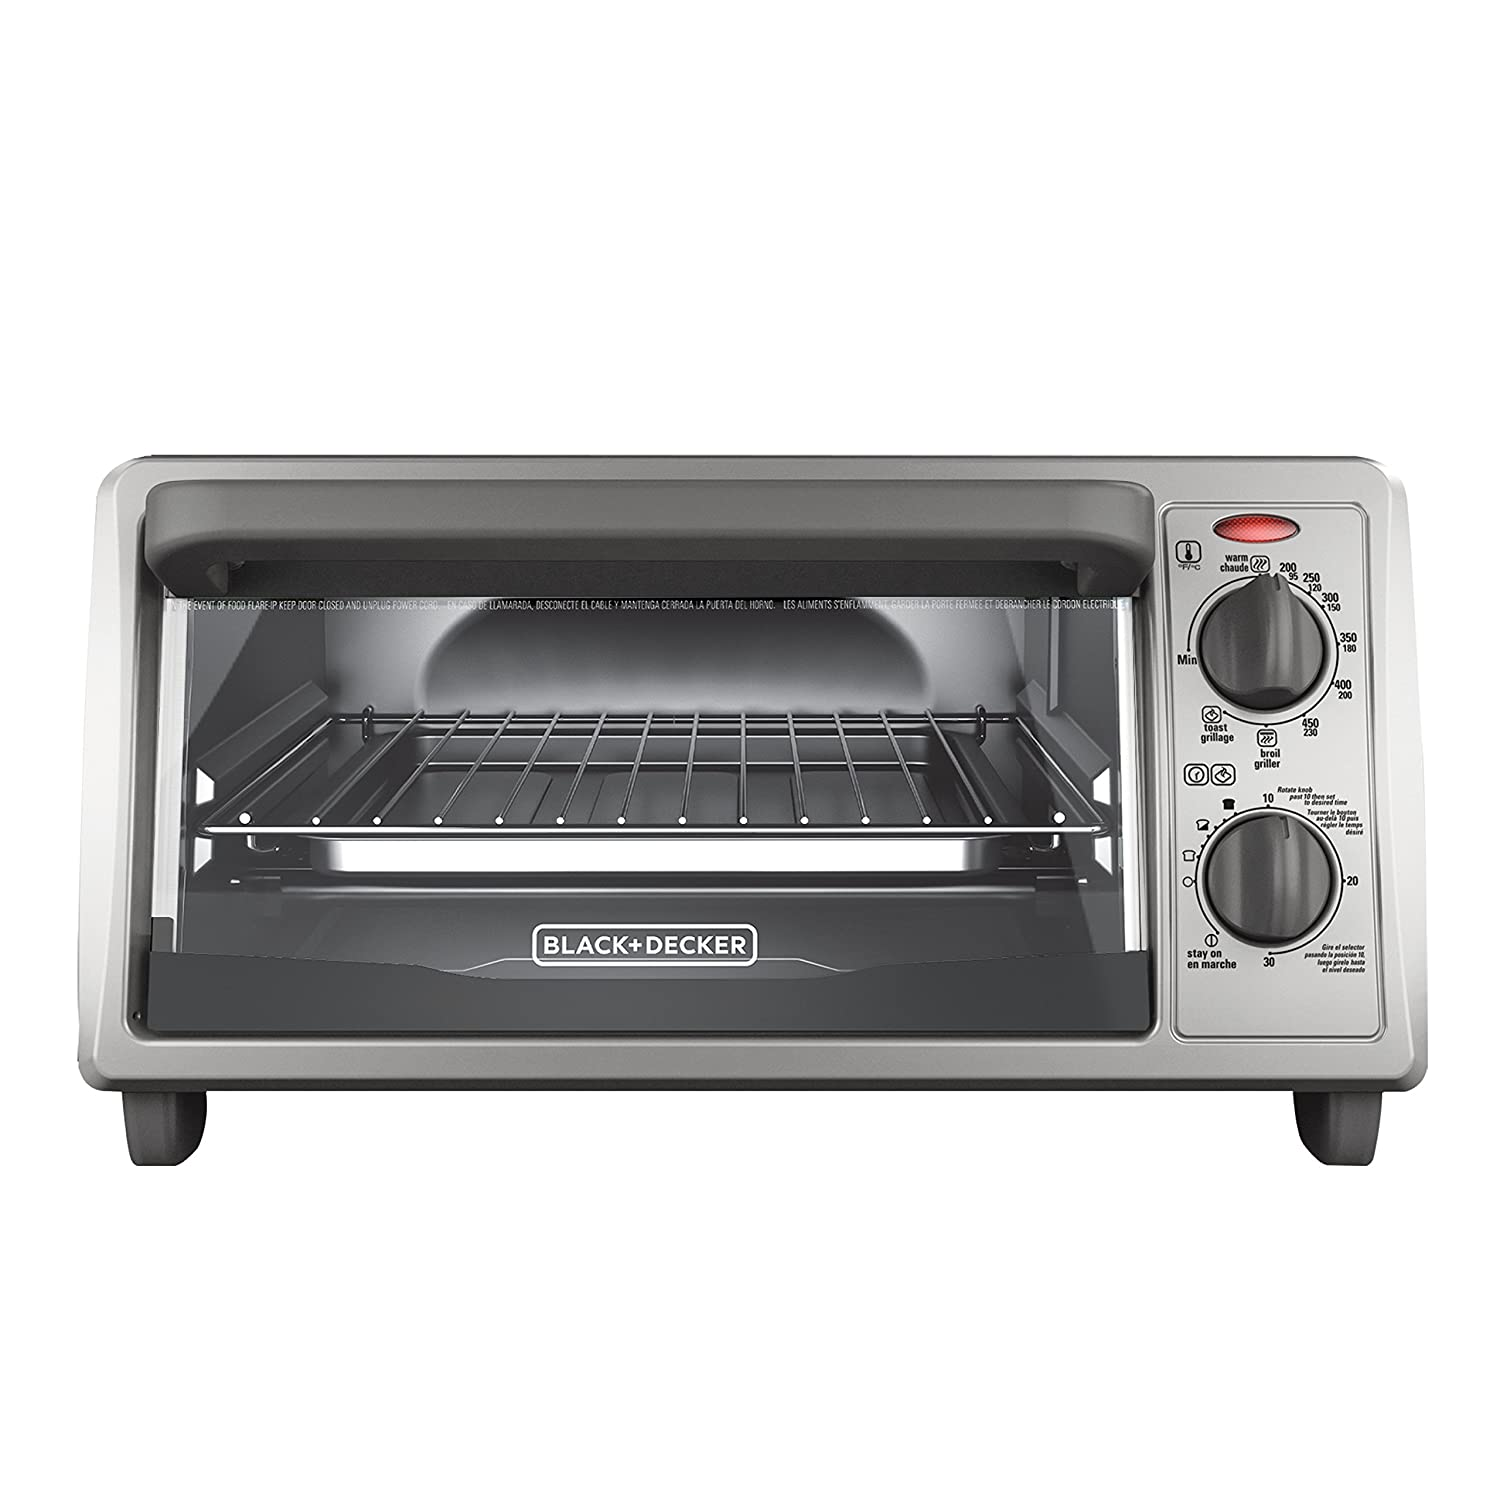 spin decker spacemaker cabinet oven prod under black toaster